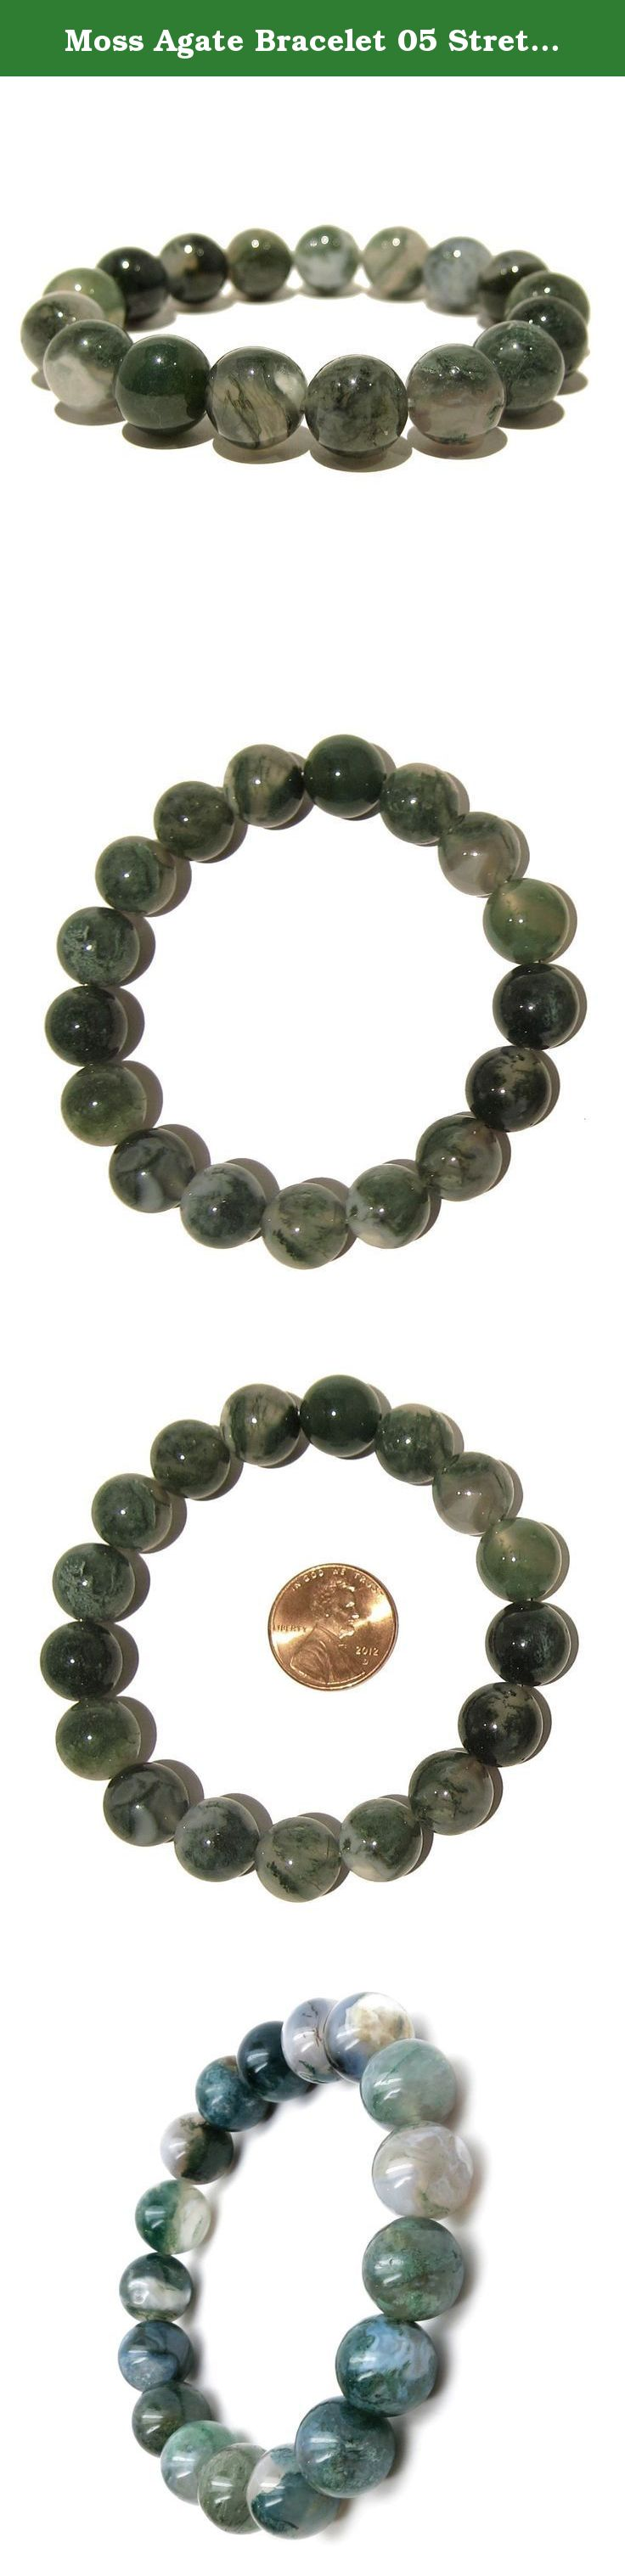 Moss Agate Bracelet 05 Stretch 11-12mm Green Crystal Healing Stone Round (Gift Box) (6.75 Inches). Moss Agate Stretch Bracelet Natural Moss Agate stones are beaded on your new crystal healing bracelet. These are high-quality, translucent Agates full of green moss-like inclusions and white mineral patches. The Moss Agate is polished into smooth, round 11mm to 12mm beads. The round beads are strung on sturdy stretch cord to create your chunky new Moss Agate bracelet. Moss Agate healing...